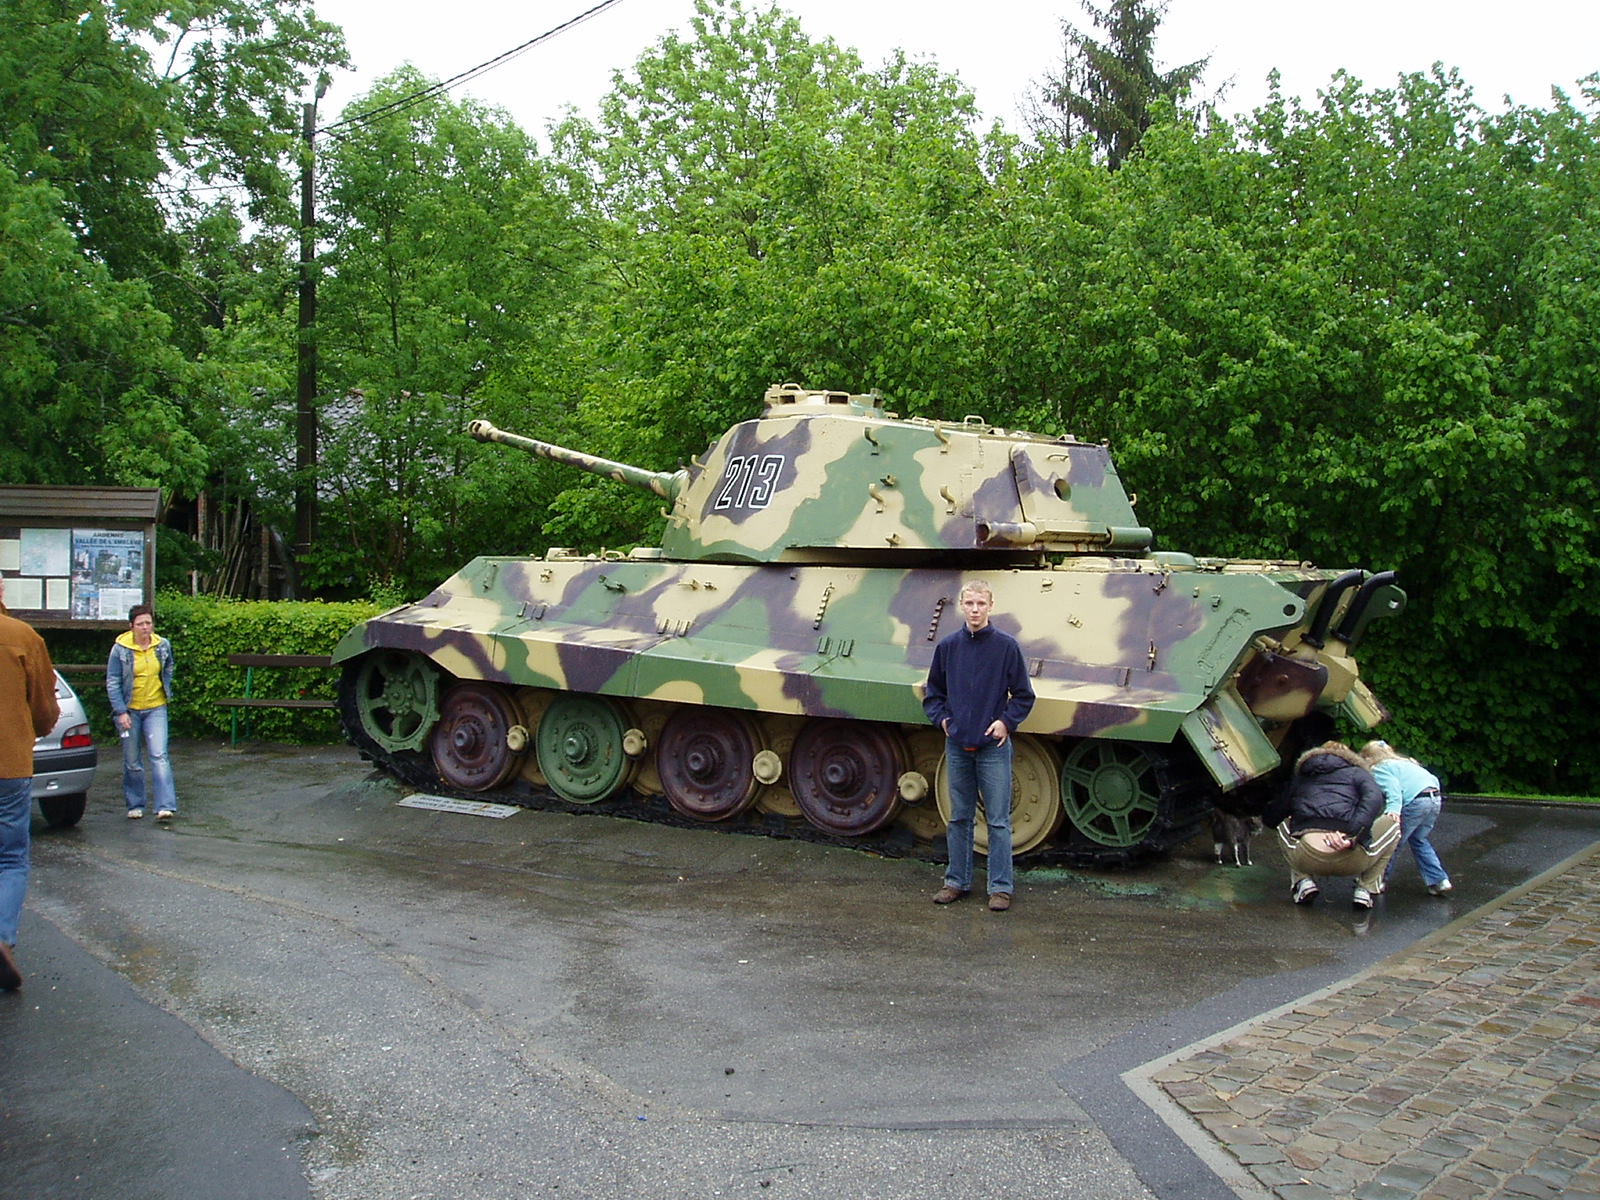 battle of the bulge - ardennen offensief - tiger panther en